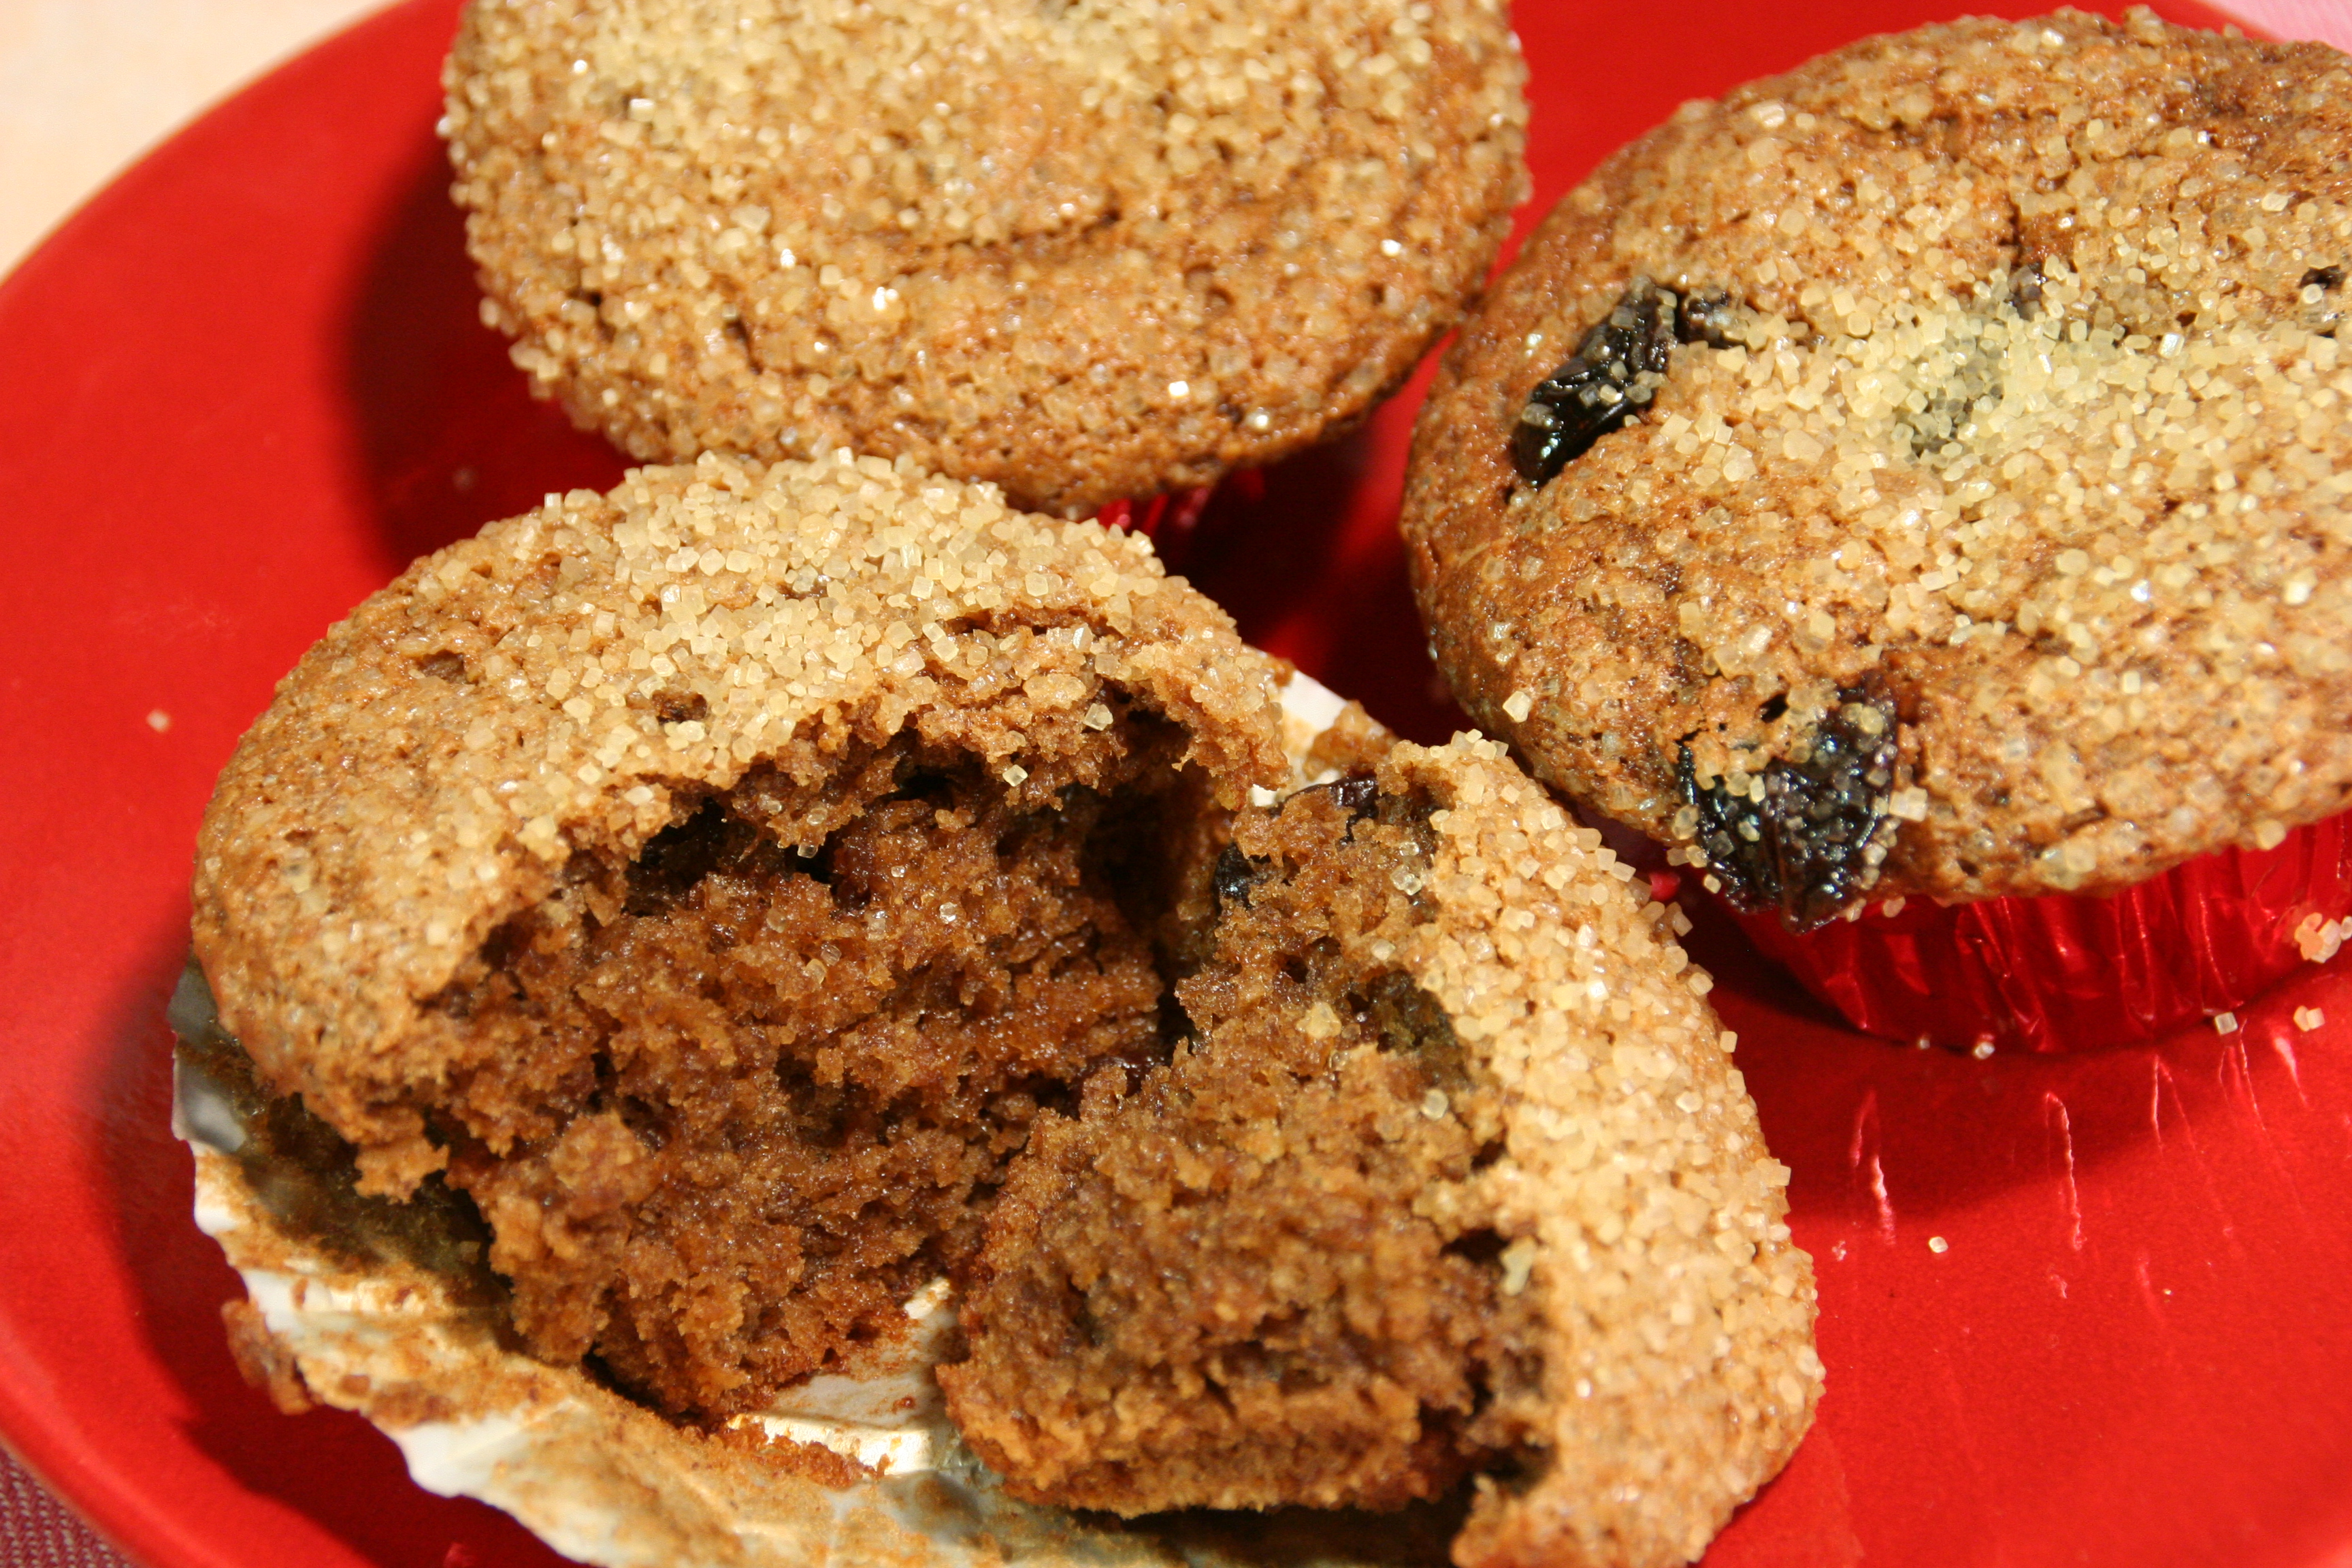 Peanut Butter and Banana Muffins with Cherries and Fresh Oat Flour